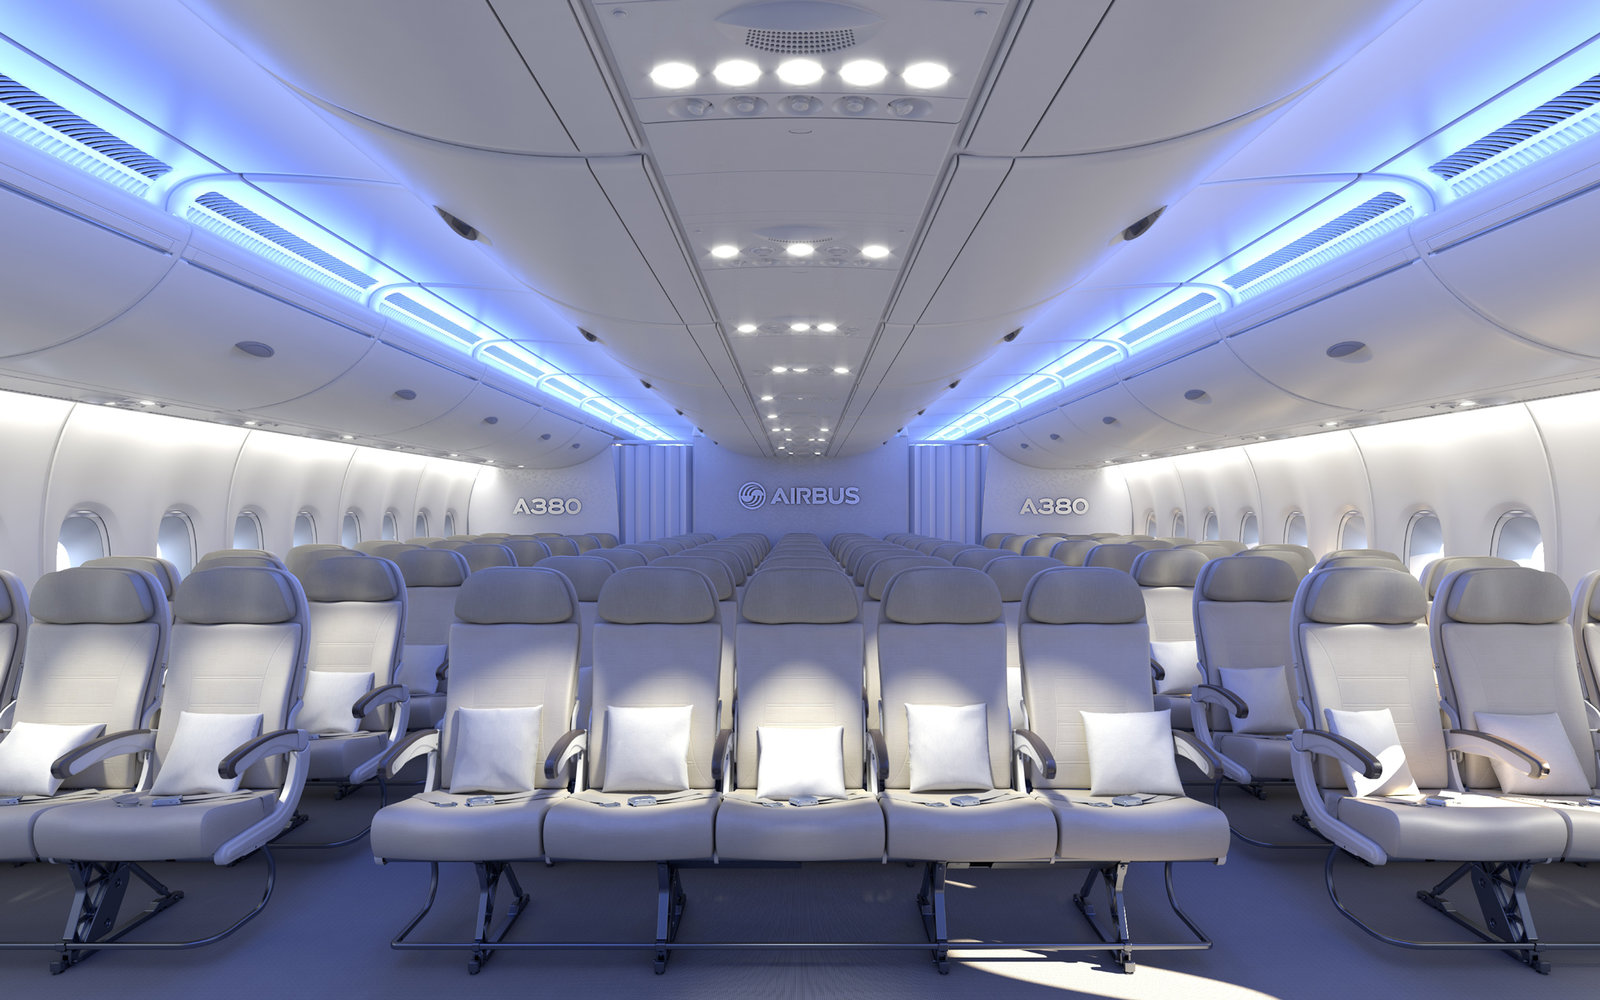 Airbus' Extra Middle Seat Could Make Economy Class Even More Cramped